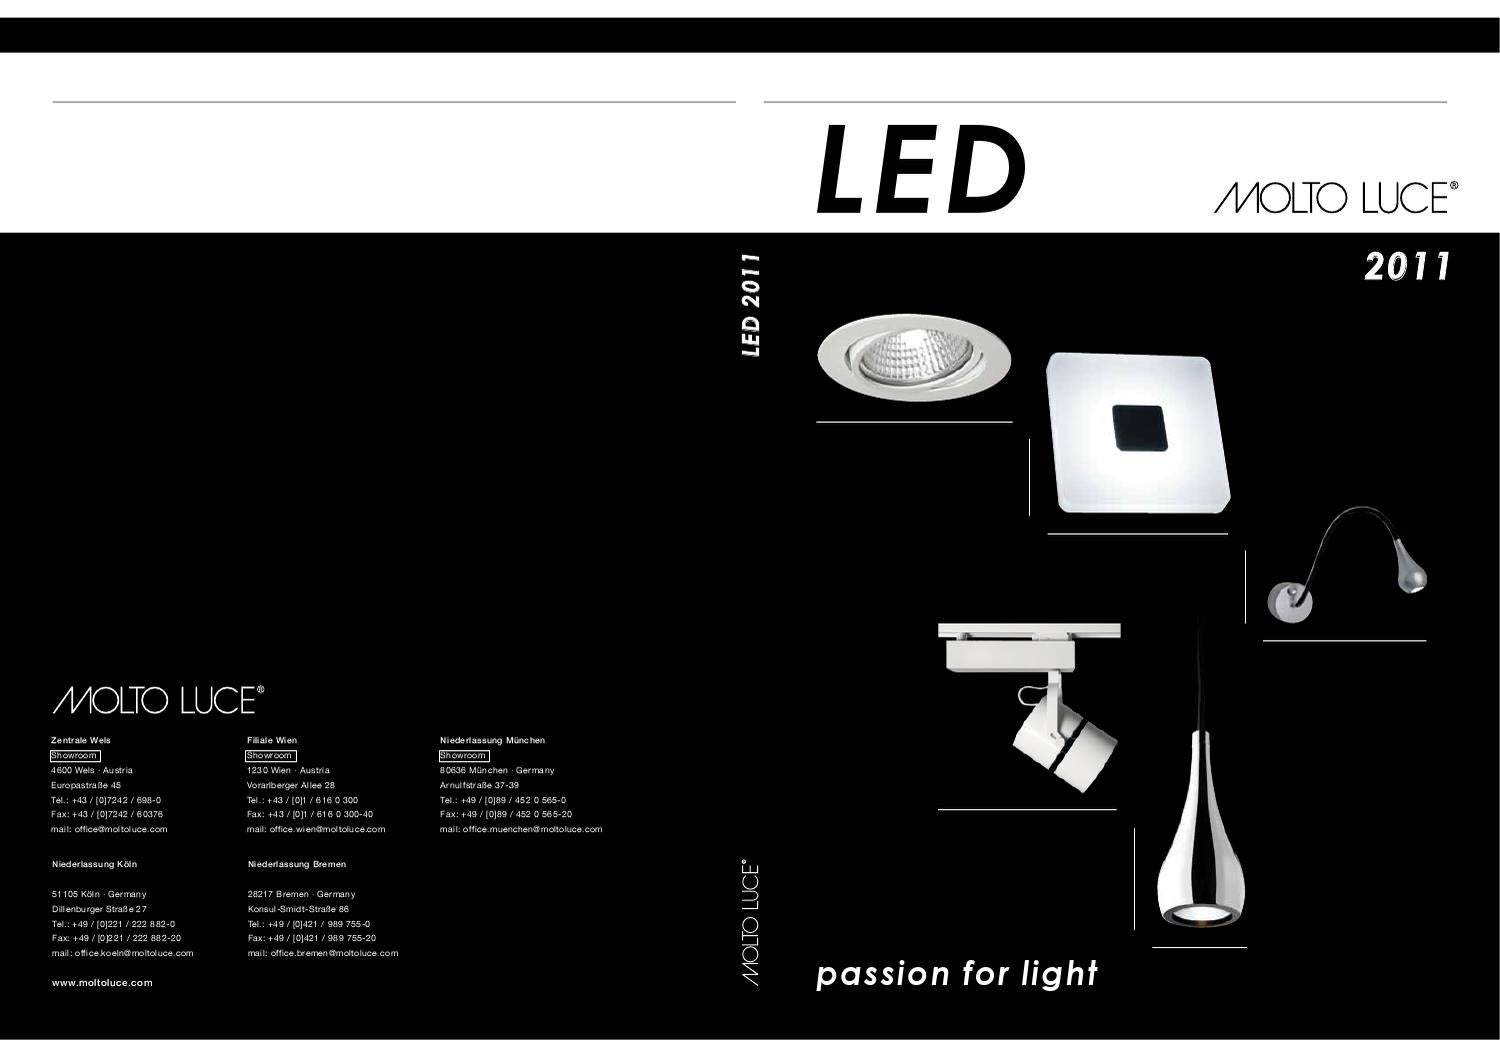 molto luce led 2011 by lightonline issuu. Black Bedroom Furniture Sets. Home Design Ideas